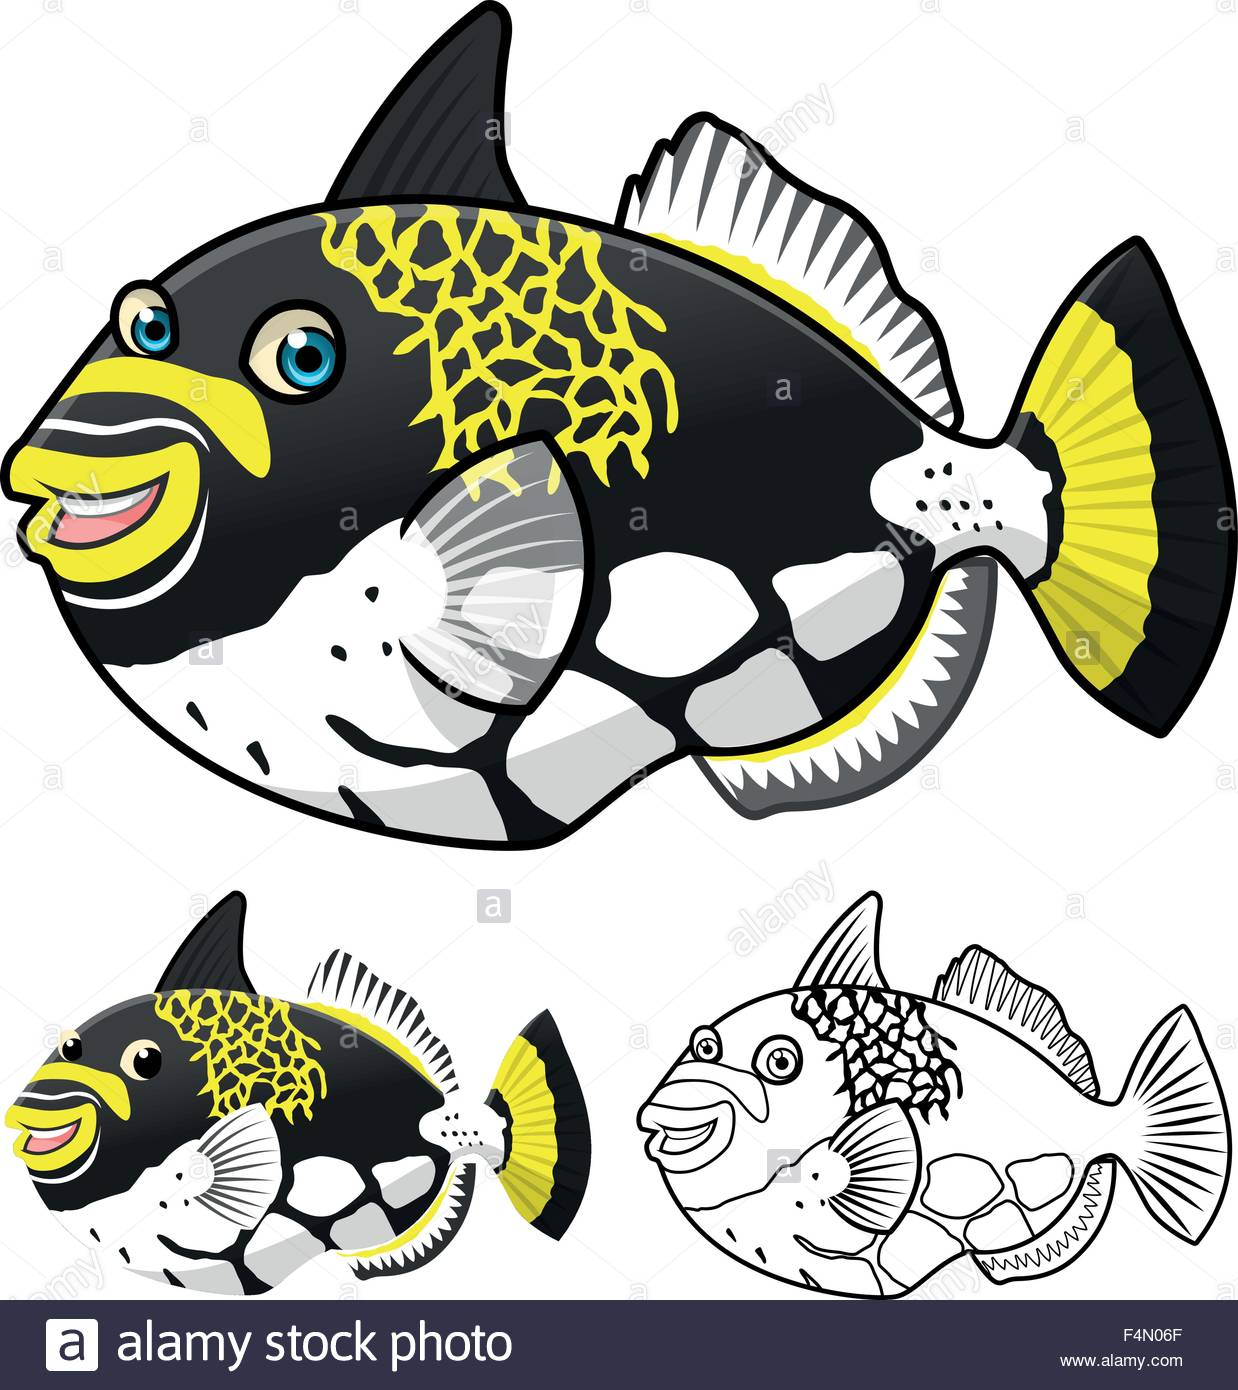 1238x1390 Great Barrier Reef Fish Stock Vector Images